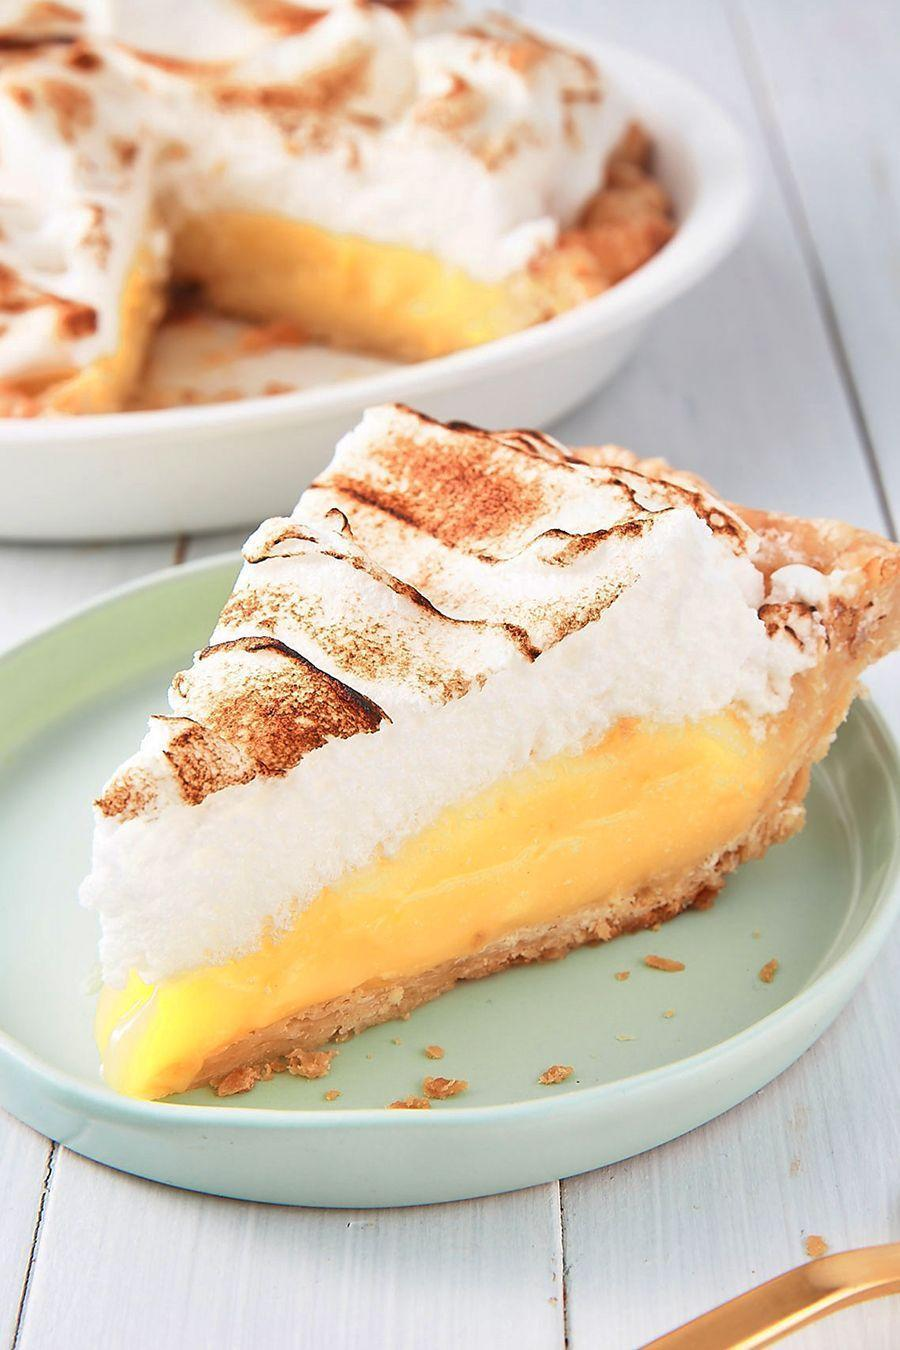 """<p>Trust us, the meringue is easier to make than you'd think. Have fun with it and give it some fun swoops and peaks with the back of a metal spoon. </p><p>Get the <a href=""""https://www.delish.com/uk/cooking/recipes/a32929704/lemon-meringue-pie-recipe/"""" rel=""""nofollow noopener"""" target=""""_blank"""" data-ylk=""""slk:Lemon Meringue Pie"""" class=""""link rapid-noclick-resp"""">Lemon Meringue Pie</a> recipe. </p>"""